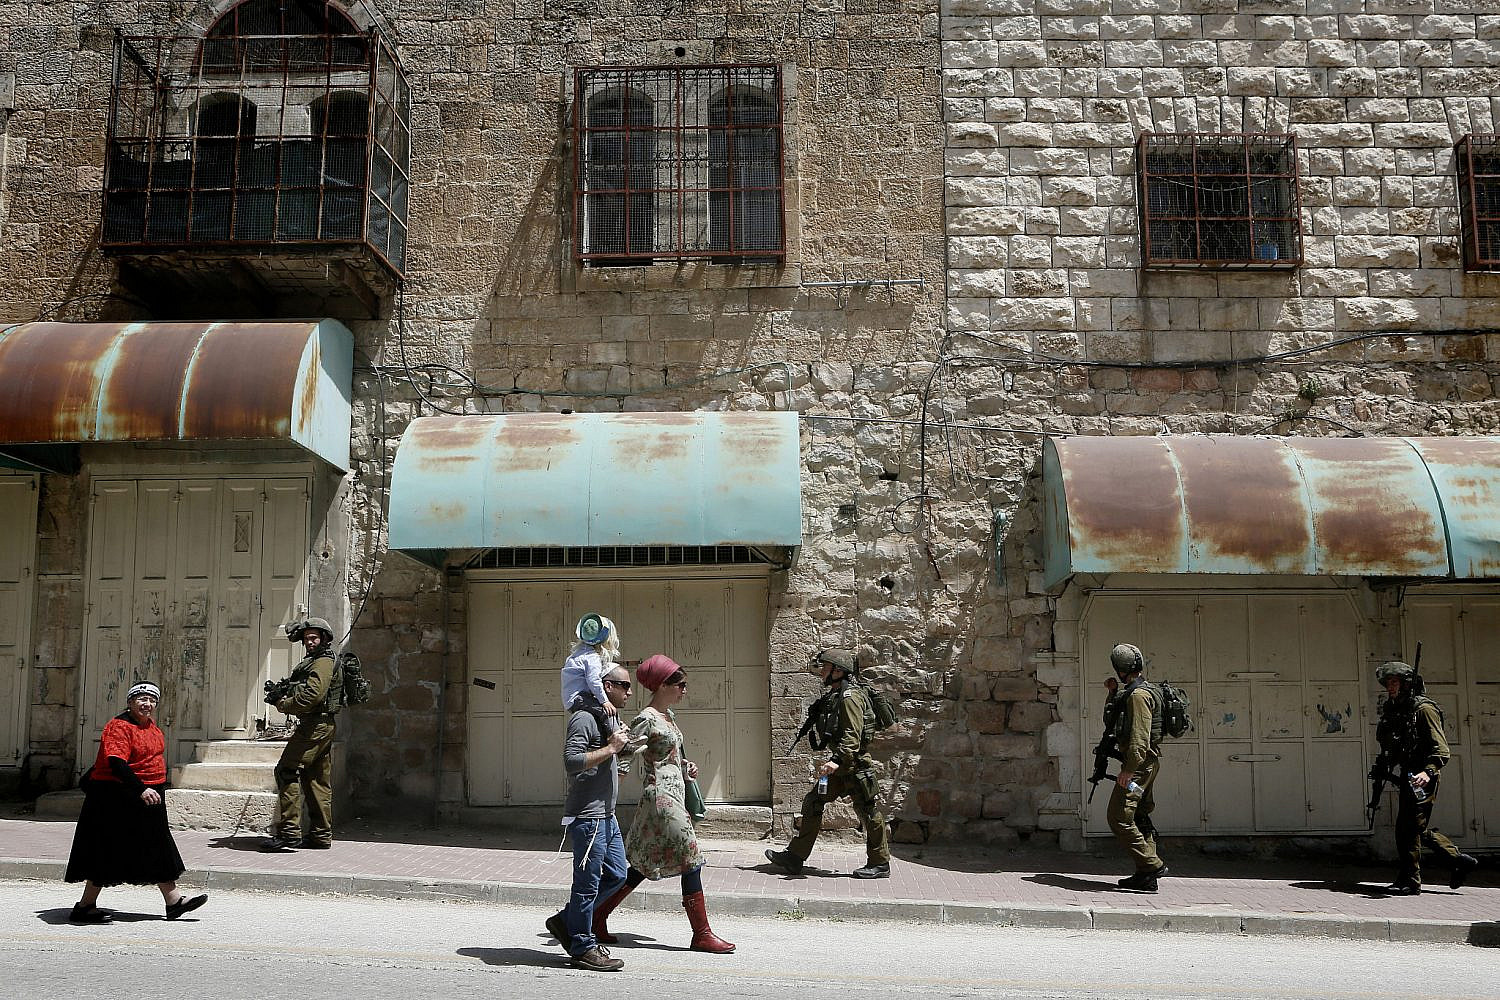 Israeli soldiers patrolling on Shuhada Street in the West bank city of Hebron, as hundreds of Orthodox Jews arrive to pray at the Cave of the Patriarch, during the Jewish holiday of Passover. April 16, 2014. (Miriam Alster/Flash90)